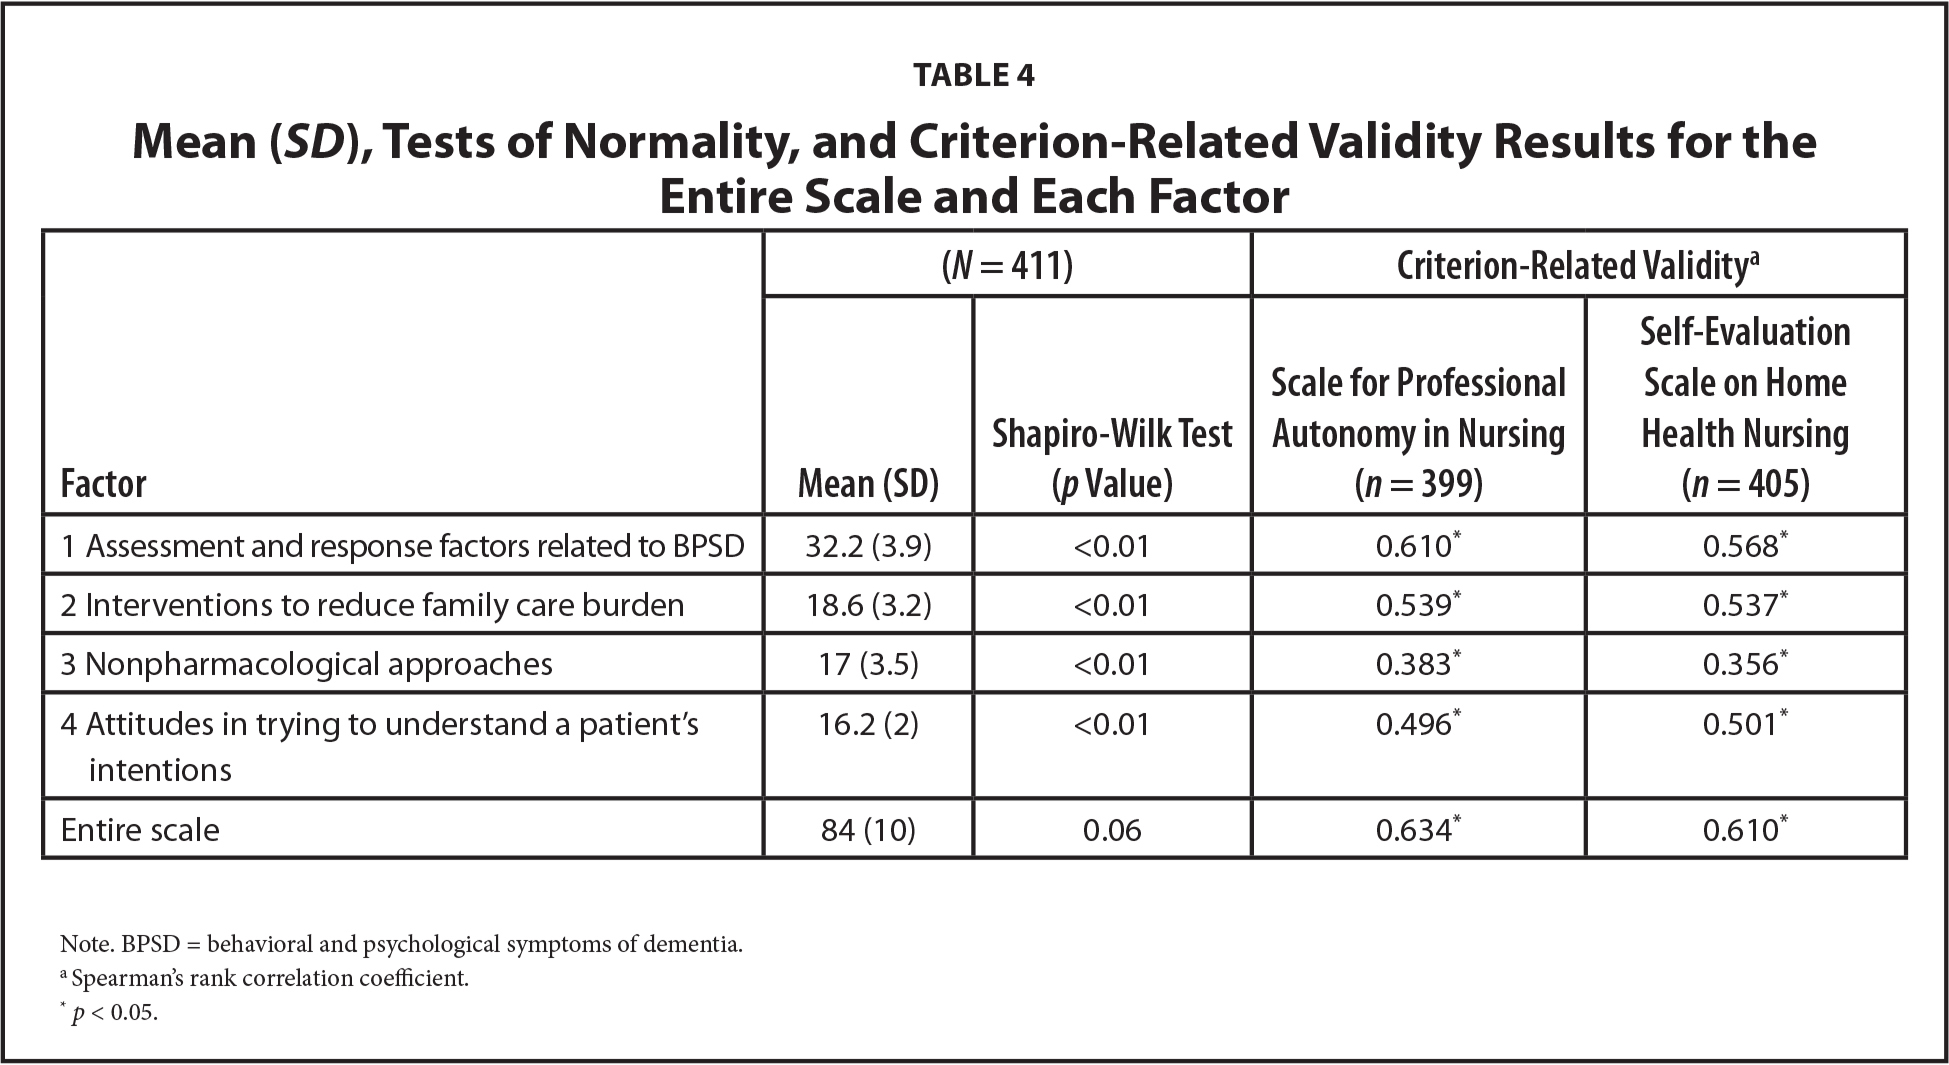 Mean (SD), Tests of Normality, and Criterion-Related Validity Results for the Entire Scale and Each Factor